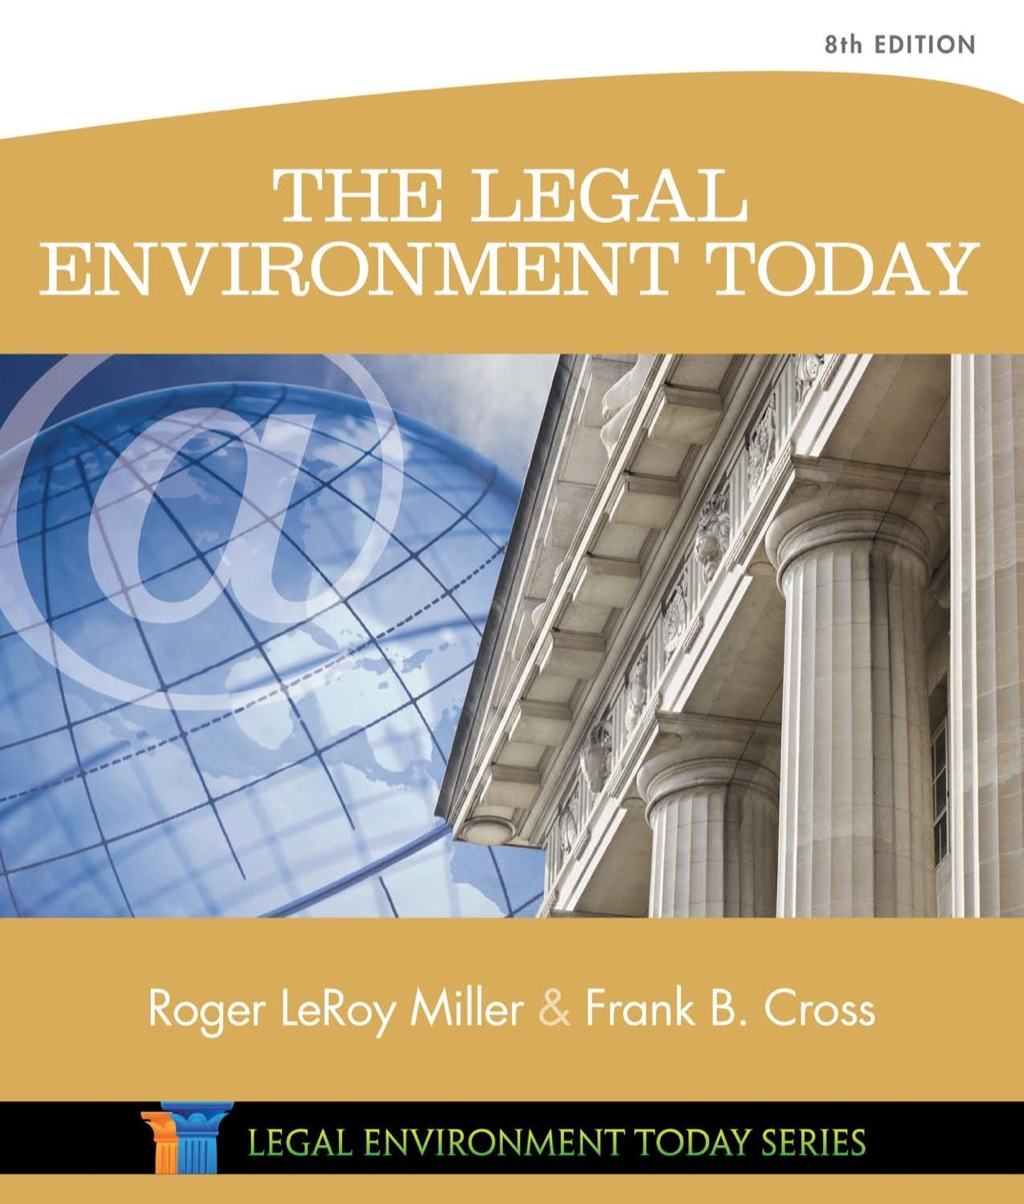 Compare legal environment ebook ebooks miscellaneous prices and buy the legal environment today ebook ebooks fandeluxe Gallery